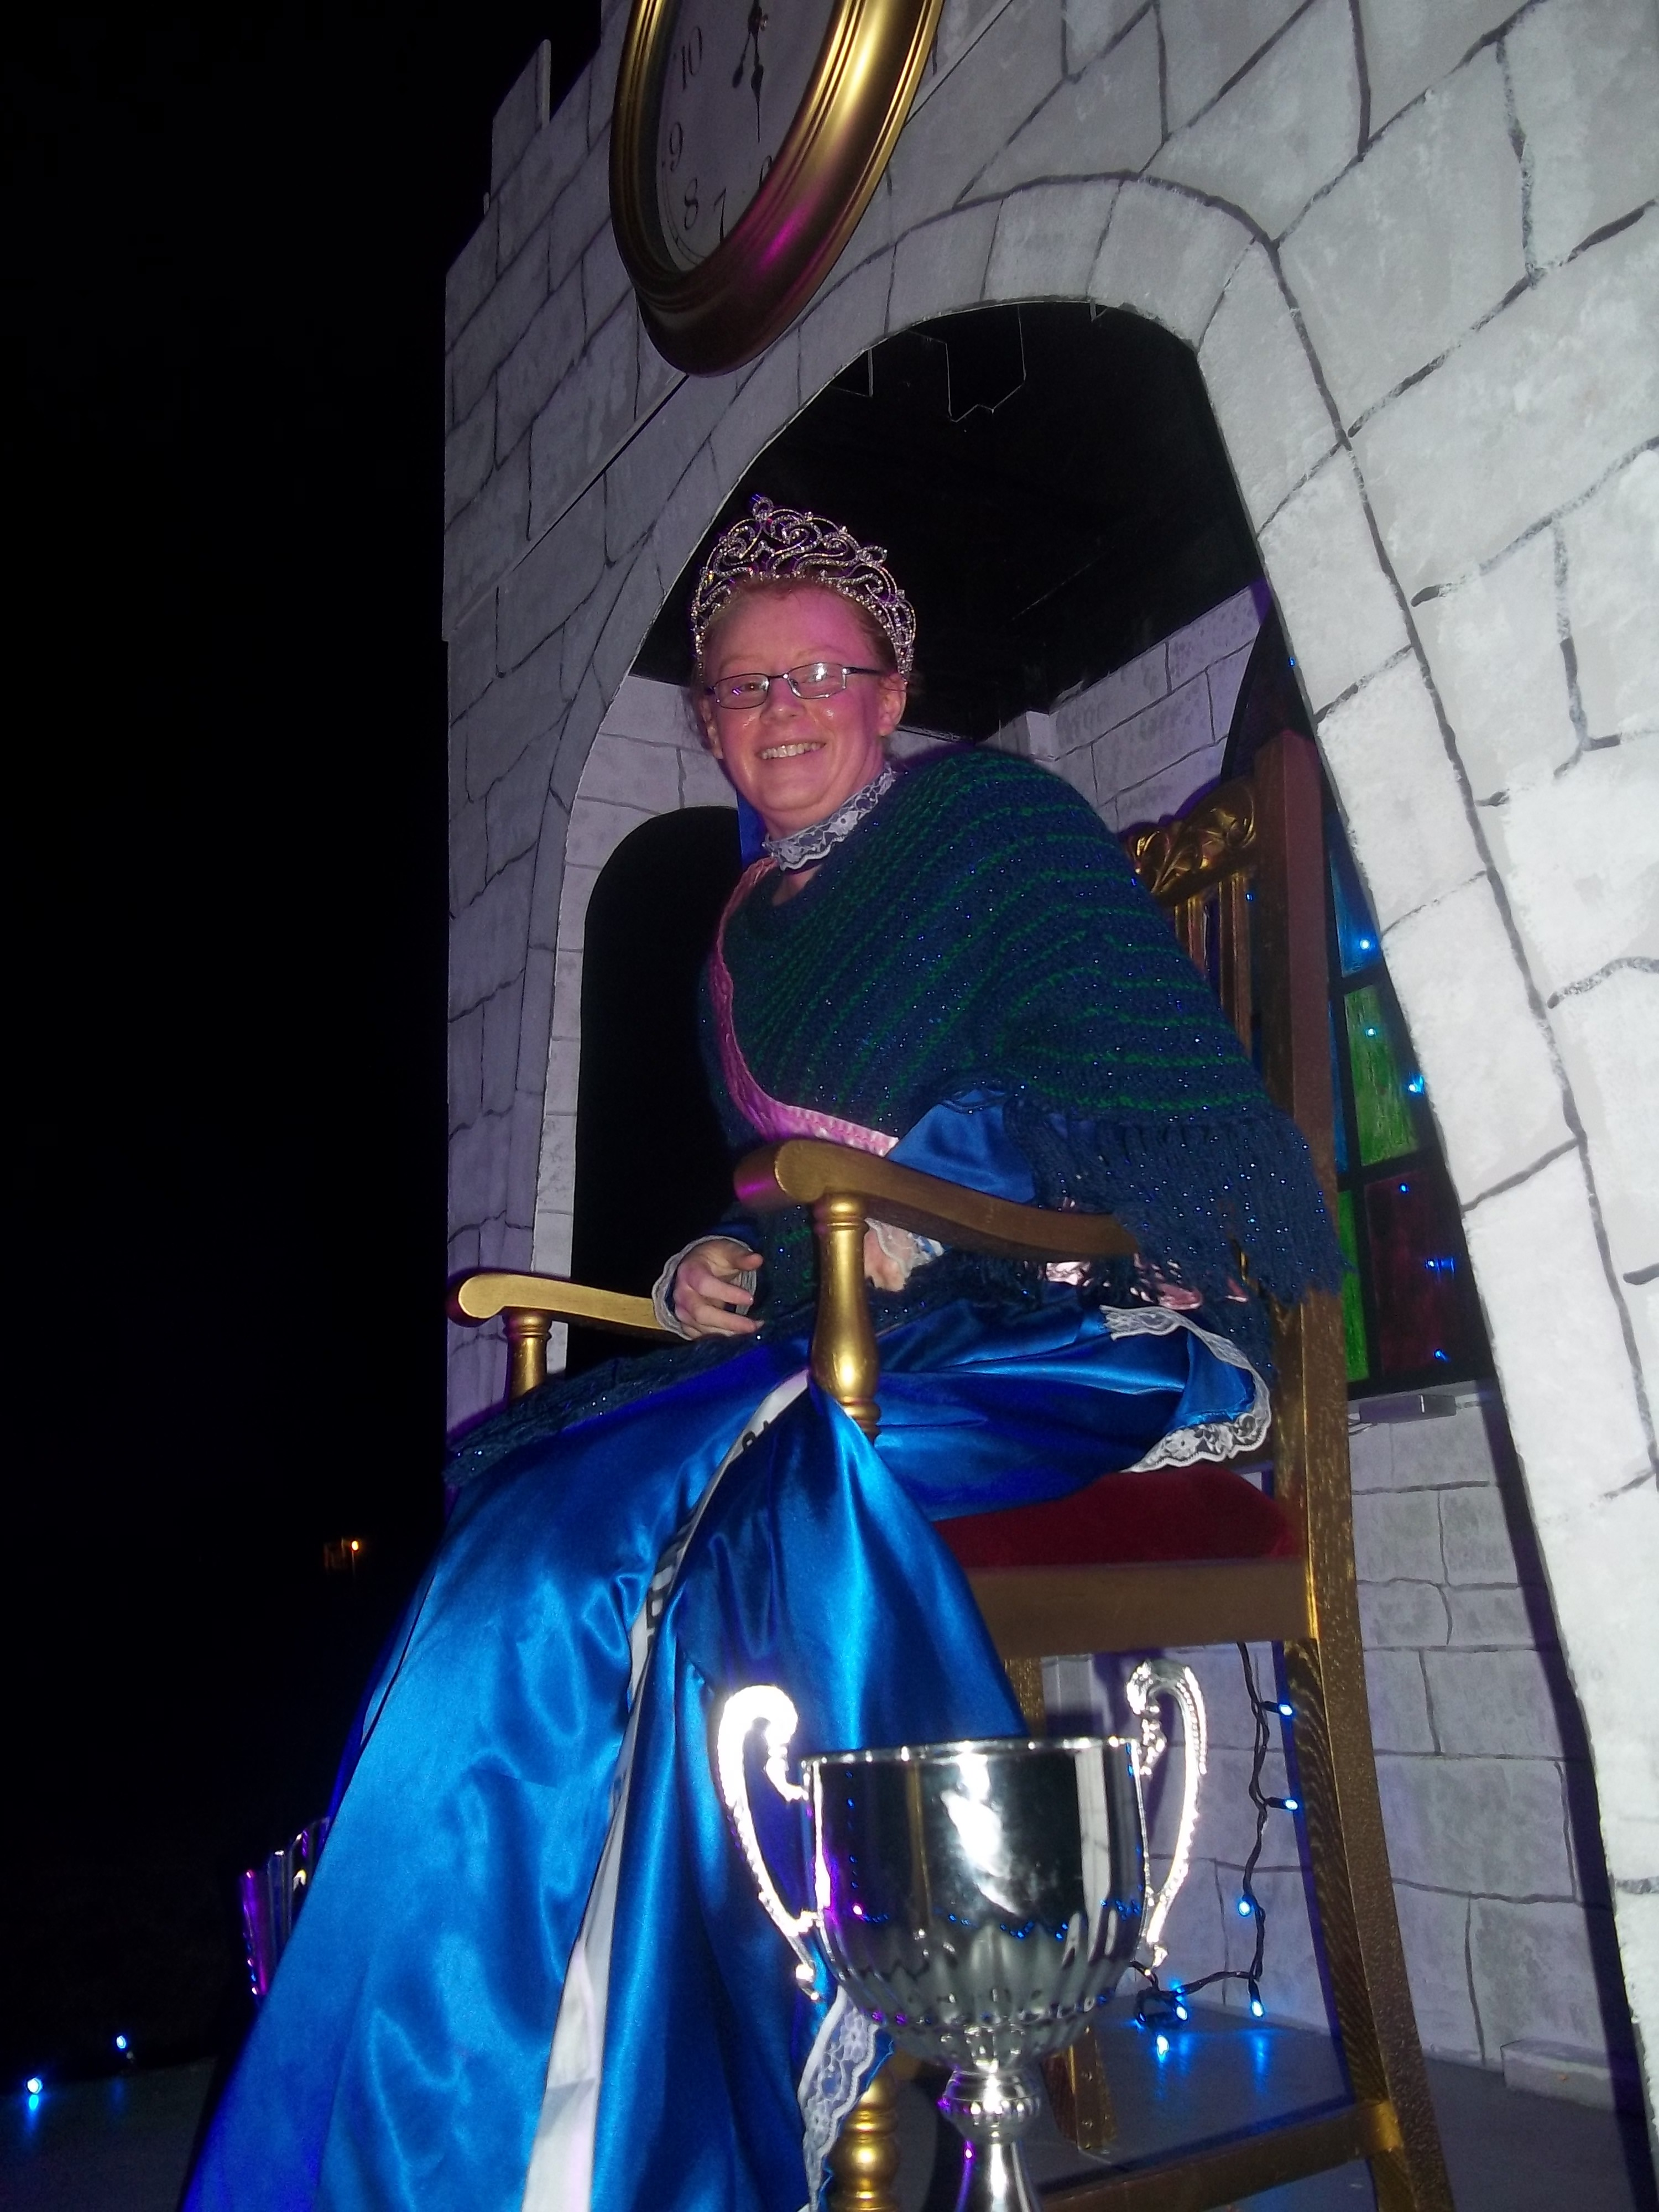 Cowes Illuminated- Senior Queen